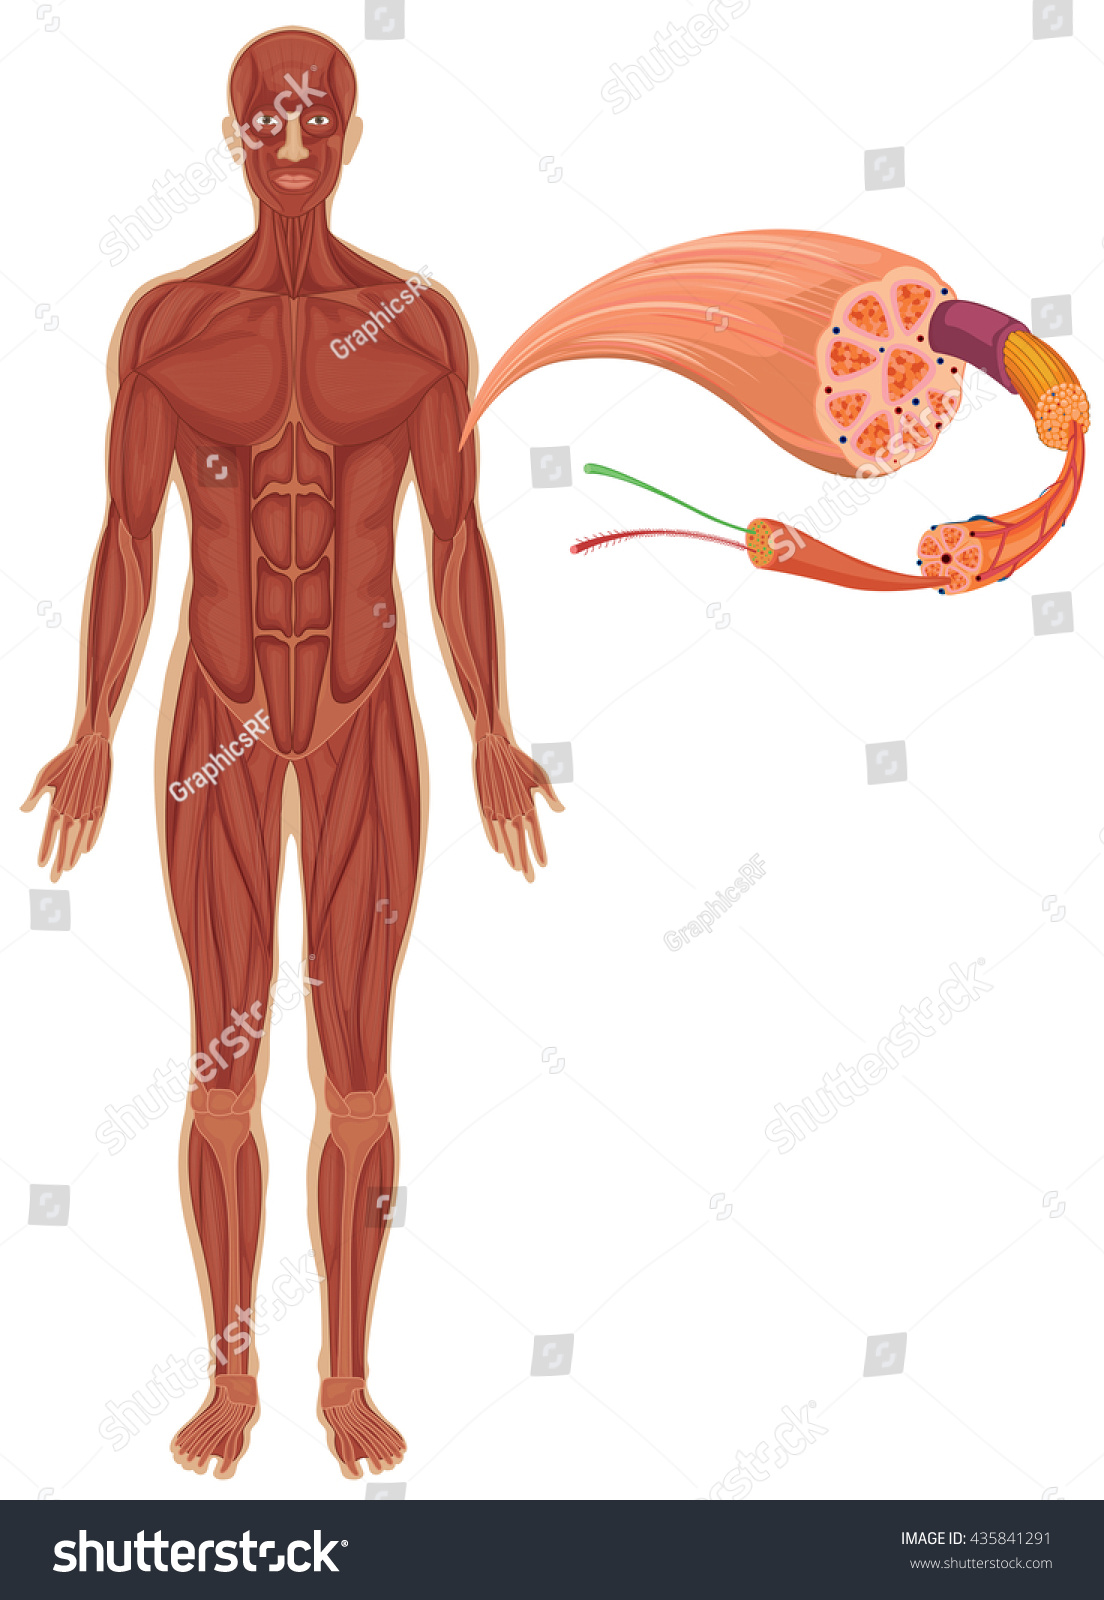 Illustration Graphics Contest Full Body Muscle Diagram For Wire Admin Anatomy System Human And Chart Images Stock Vector 435841291 Shutterstock Rh Com